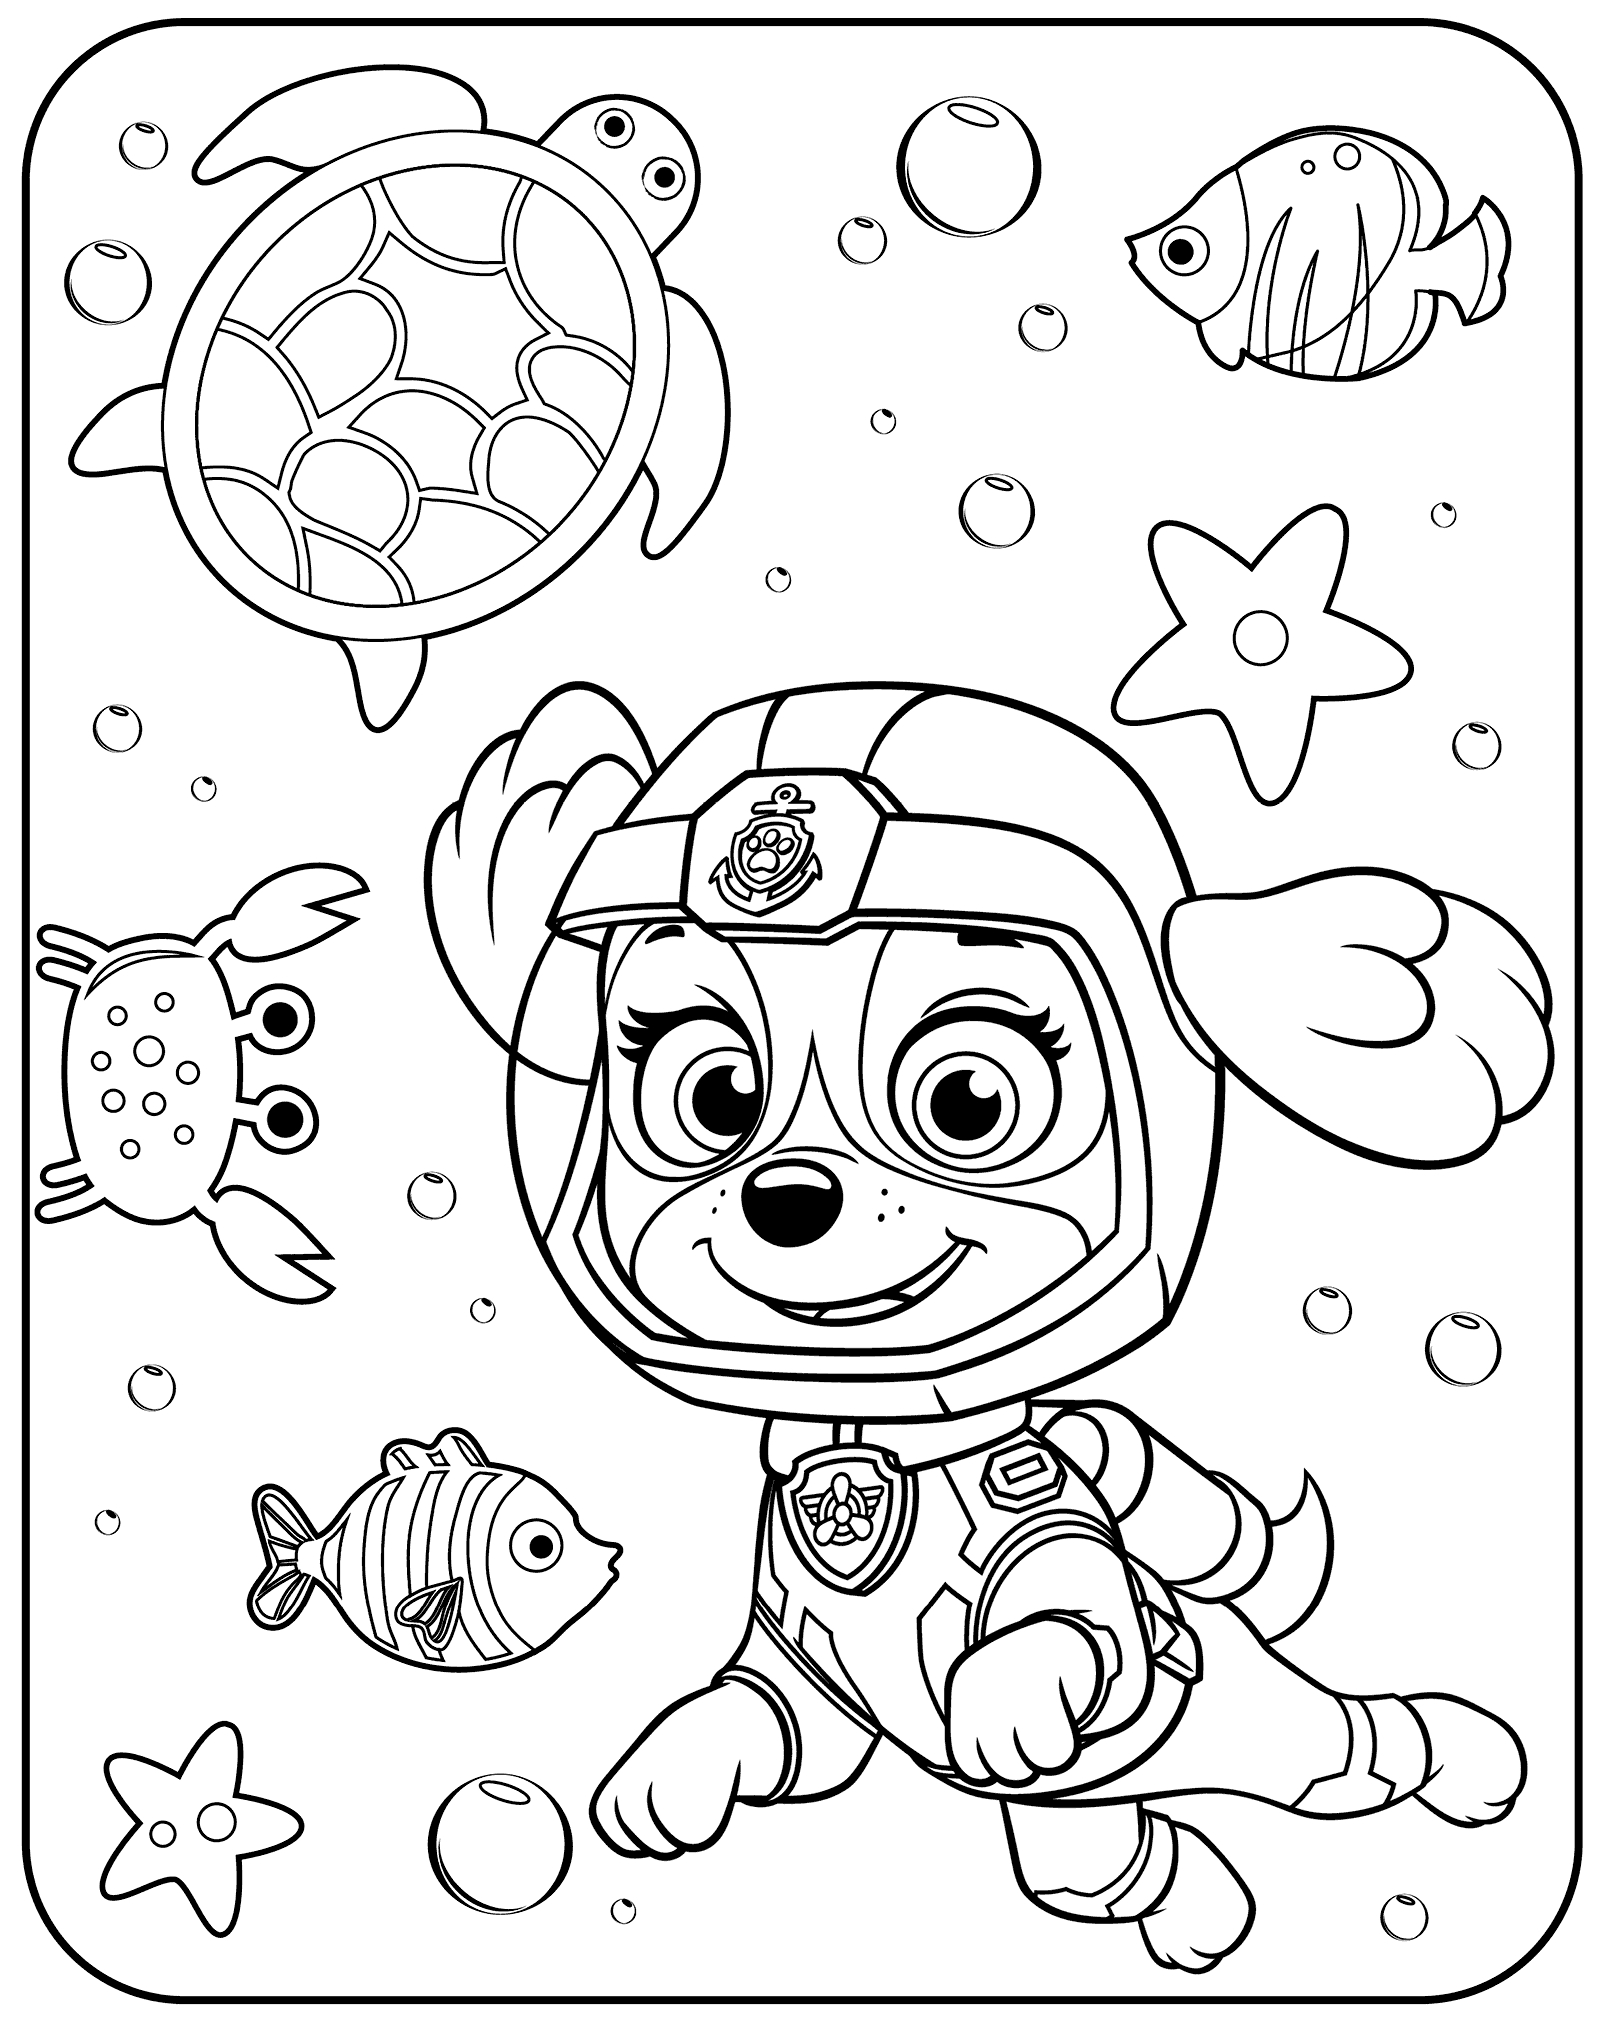 1600x2020 Cartoons Paw Patrol All Paw Patrol Characters Paw Patrol Coloring